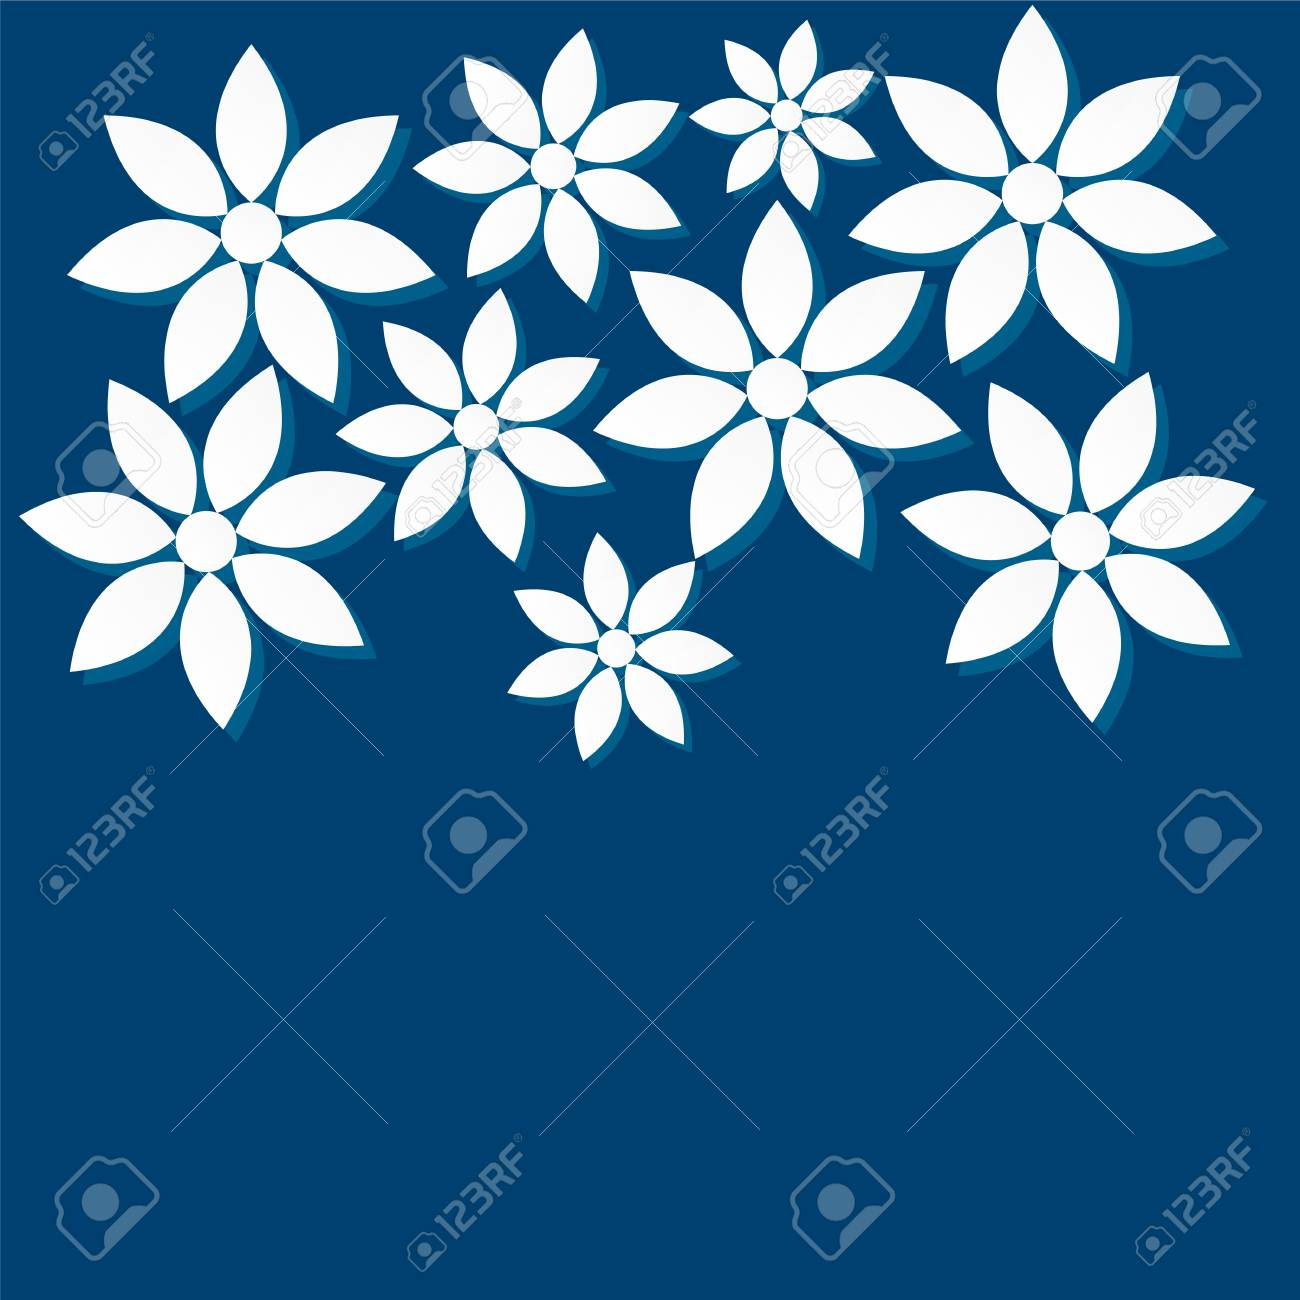 patterns of flowers out of paper Stock Vector - 18748499